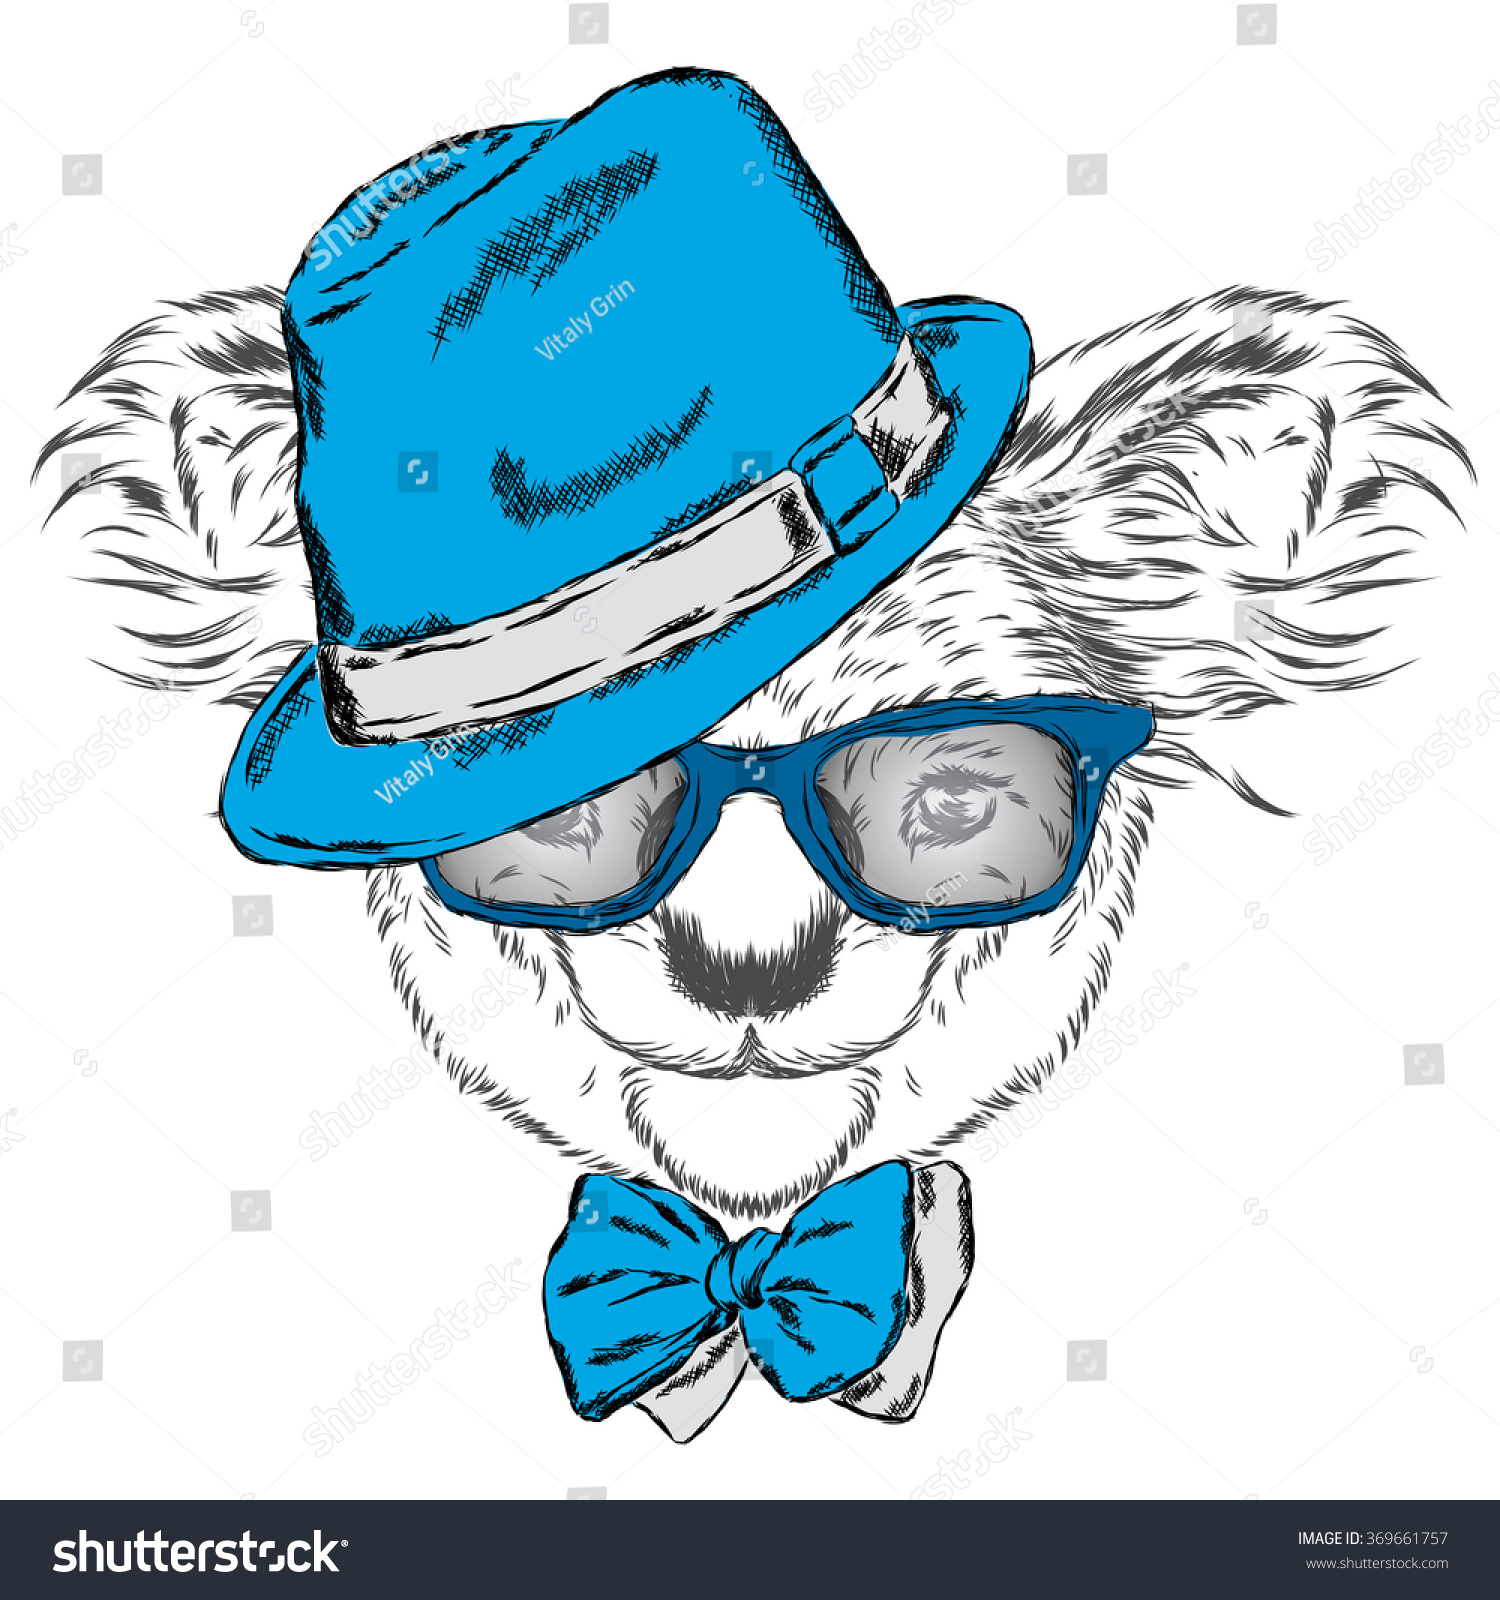 Cute Koala In A Cap And A Tie Australia Vector Illustration For